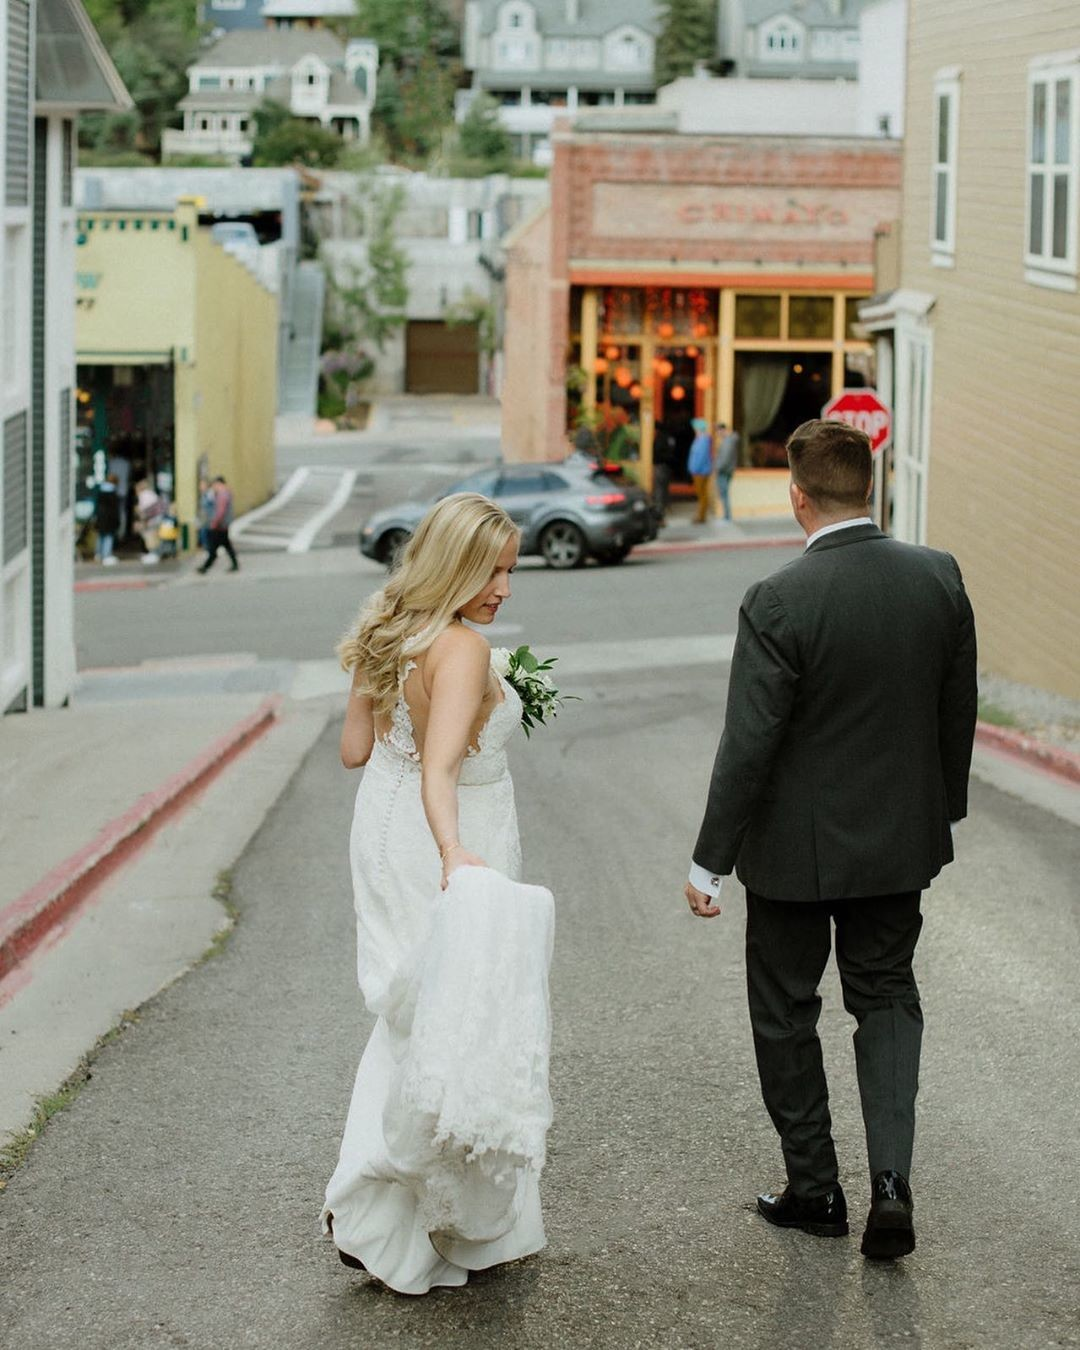 This Park City wedding was amazing. Ryan and Ashley exchanged vows on the bridge